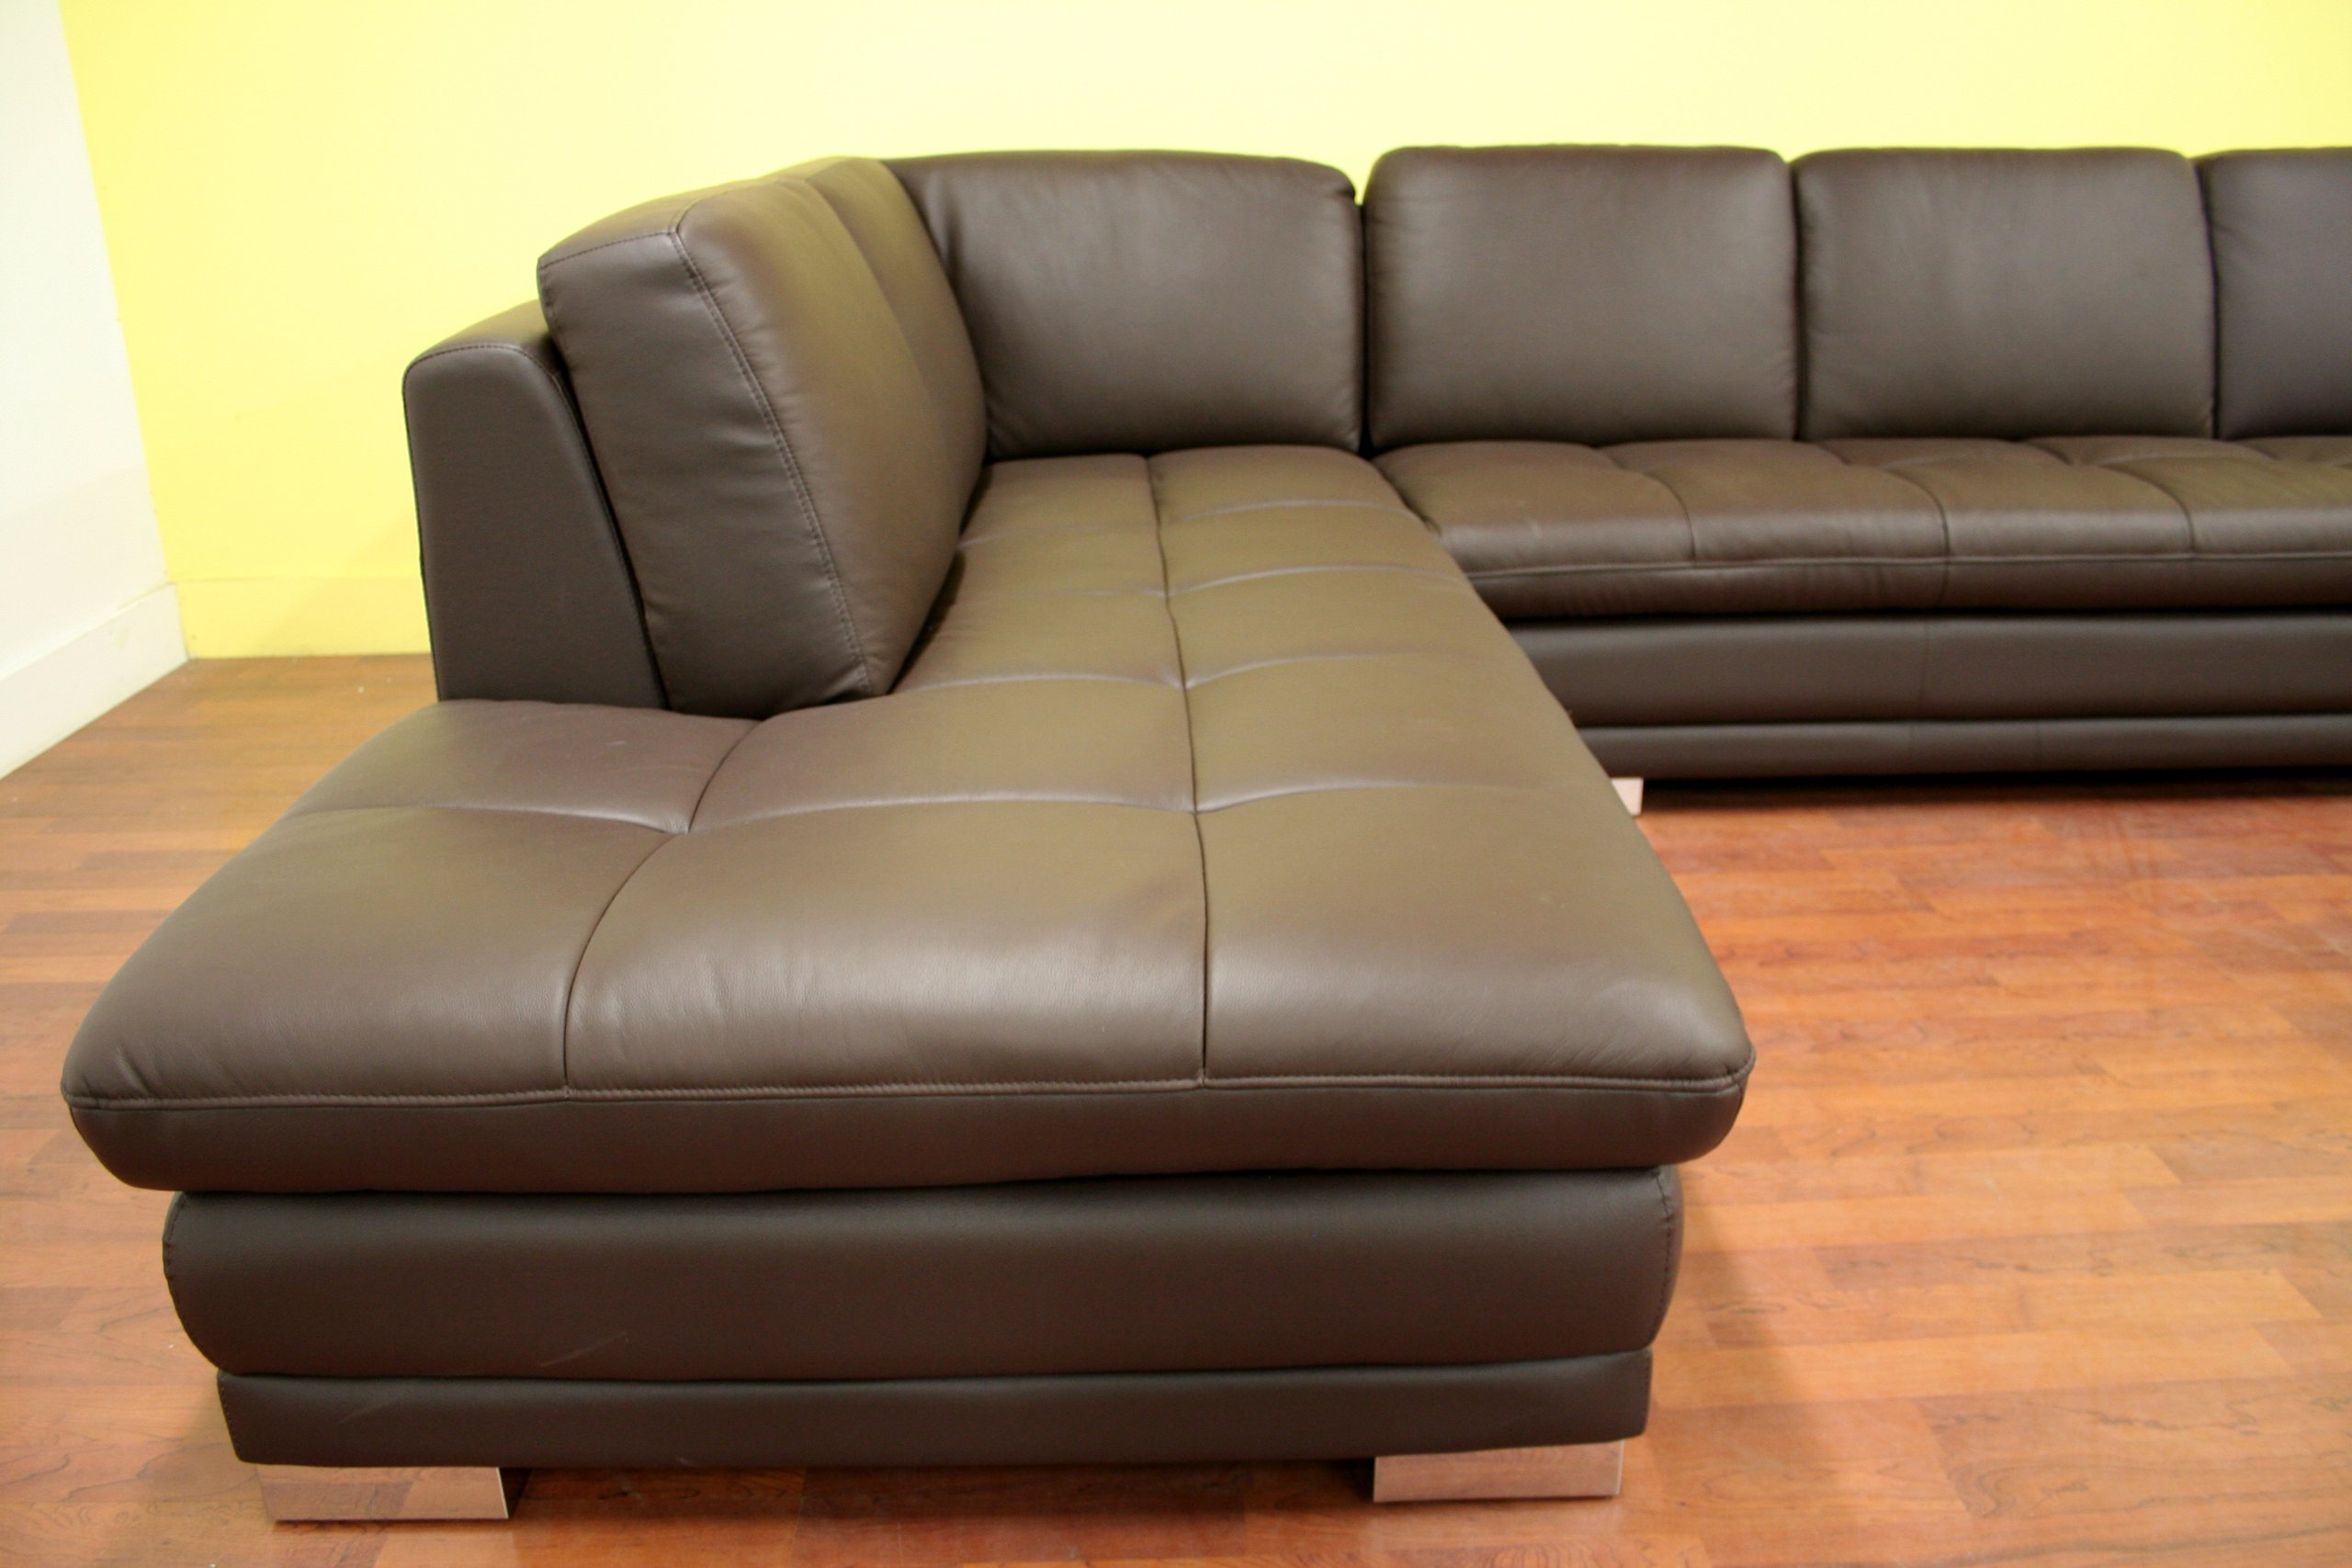 Baxton studio callidora brown leather sectional sofa with for Brown leather sectional sofa with chaise